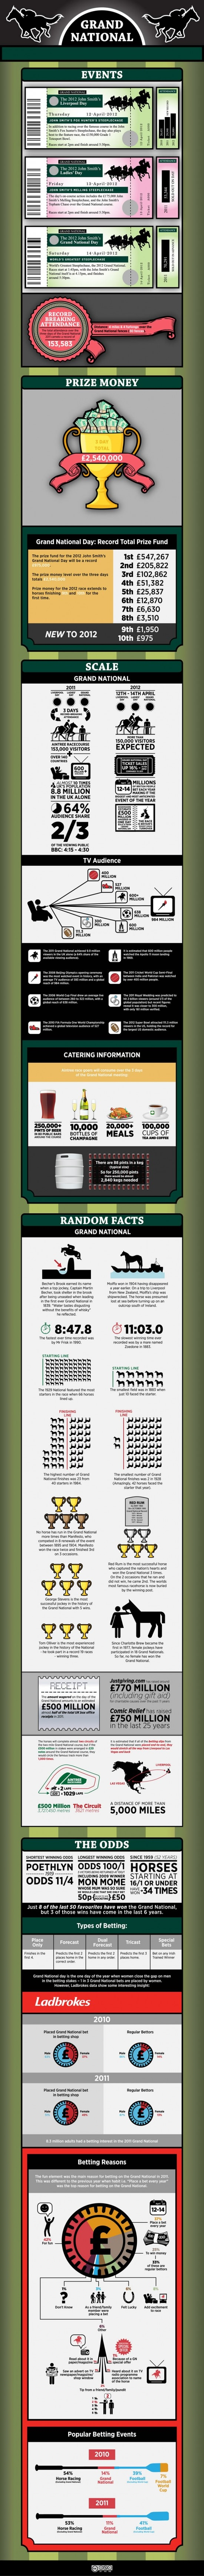 This handy infographic takes a look at the 2012 Grand National, with exclusive never before seen betting data illuminating the proceedings.This compares figures predicted for the 2012 Grand National races with previous years (and other large events) Did you know about the new prizes awarded this year for 9th and 10th place?